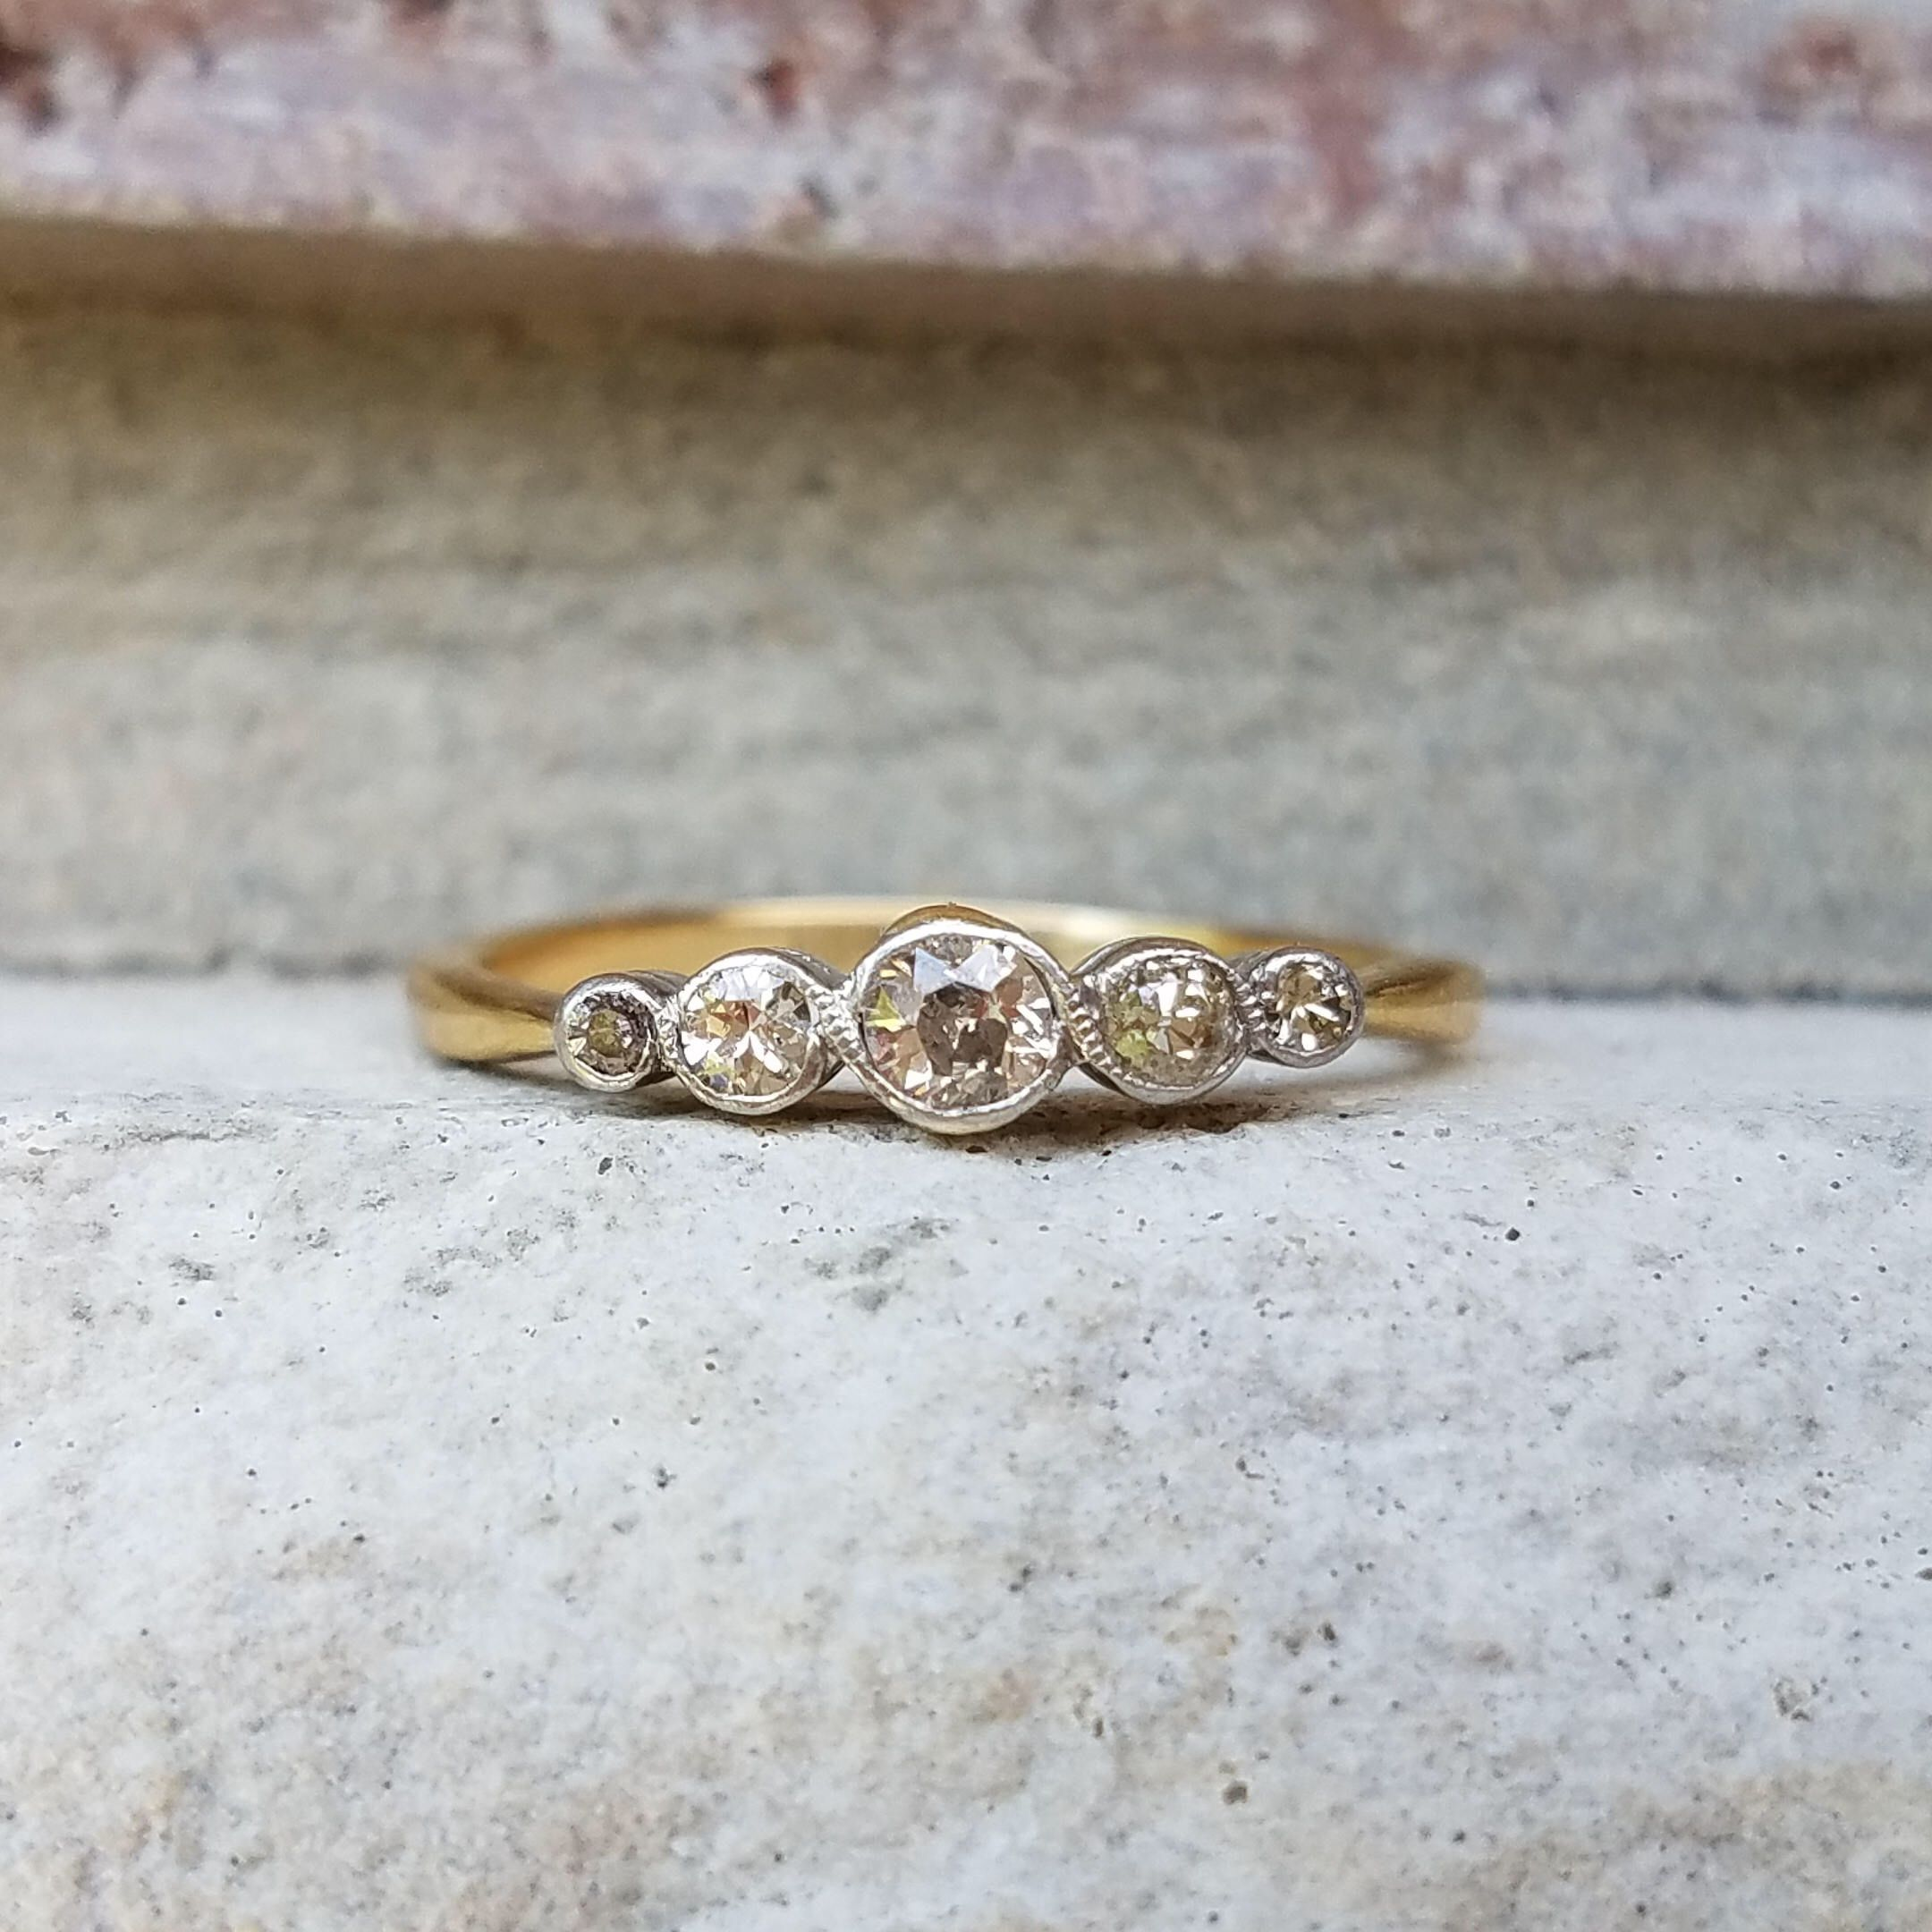 diamond store jewelry antique wholesale engagement charleston and ring tacori bands more falls diamonds church rings va